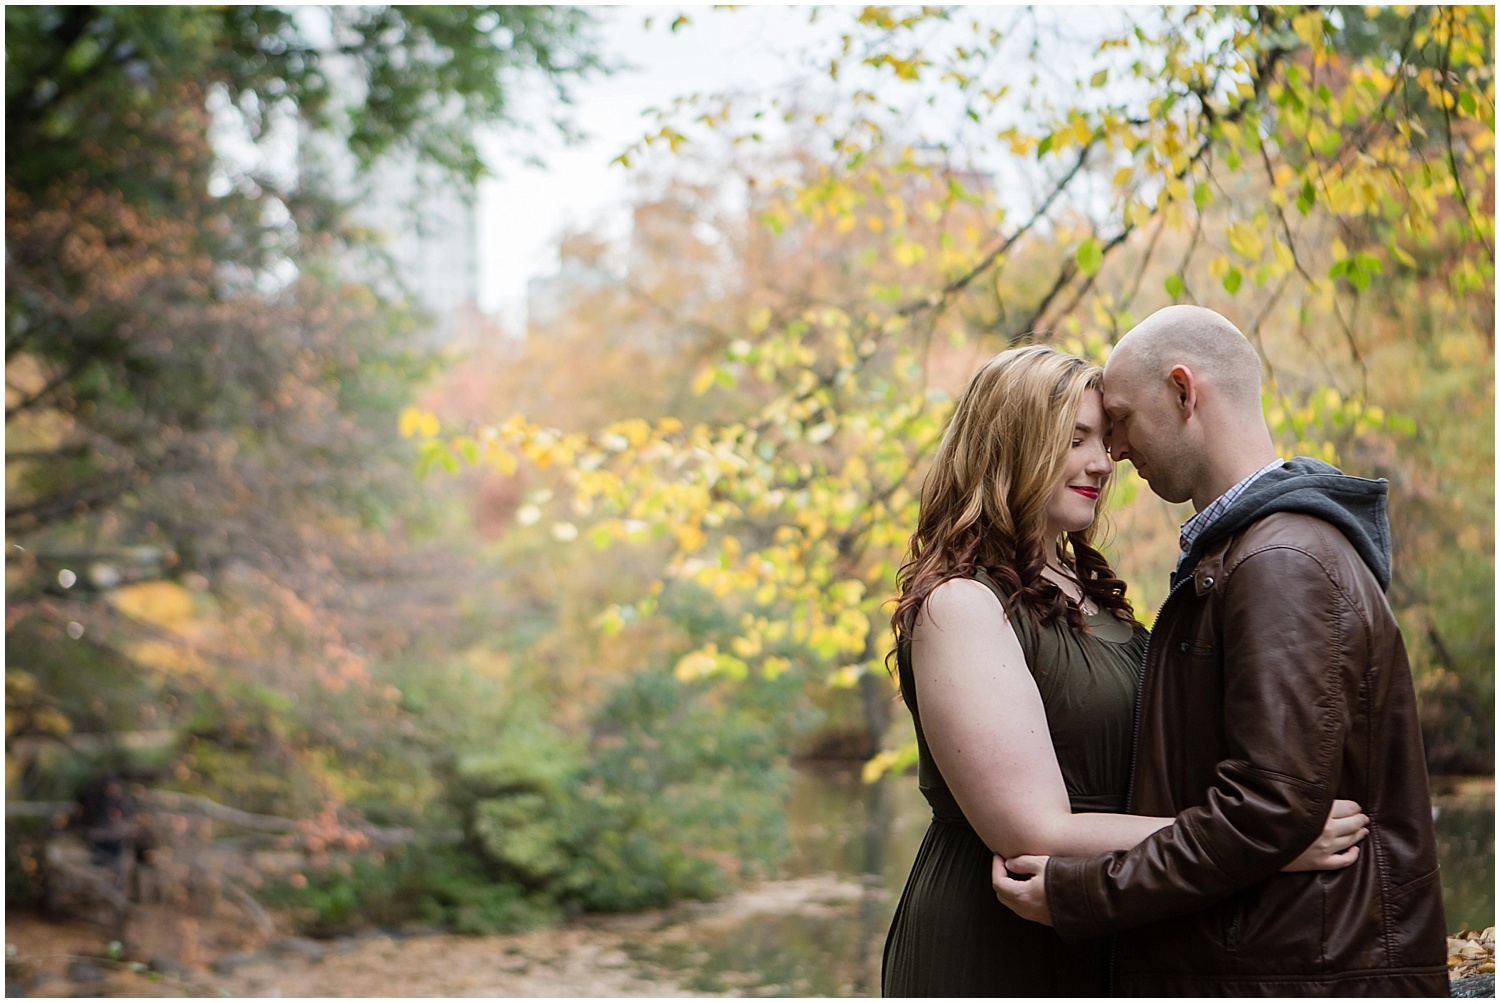 Shelley & Eric || NYC Engagement || Central Park Engagement || Amy Sims Photography || Fall Engagement